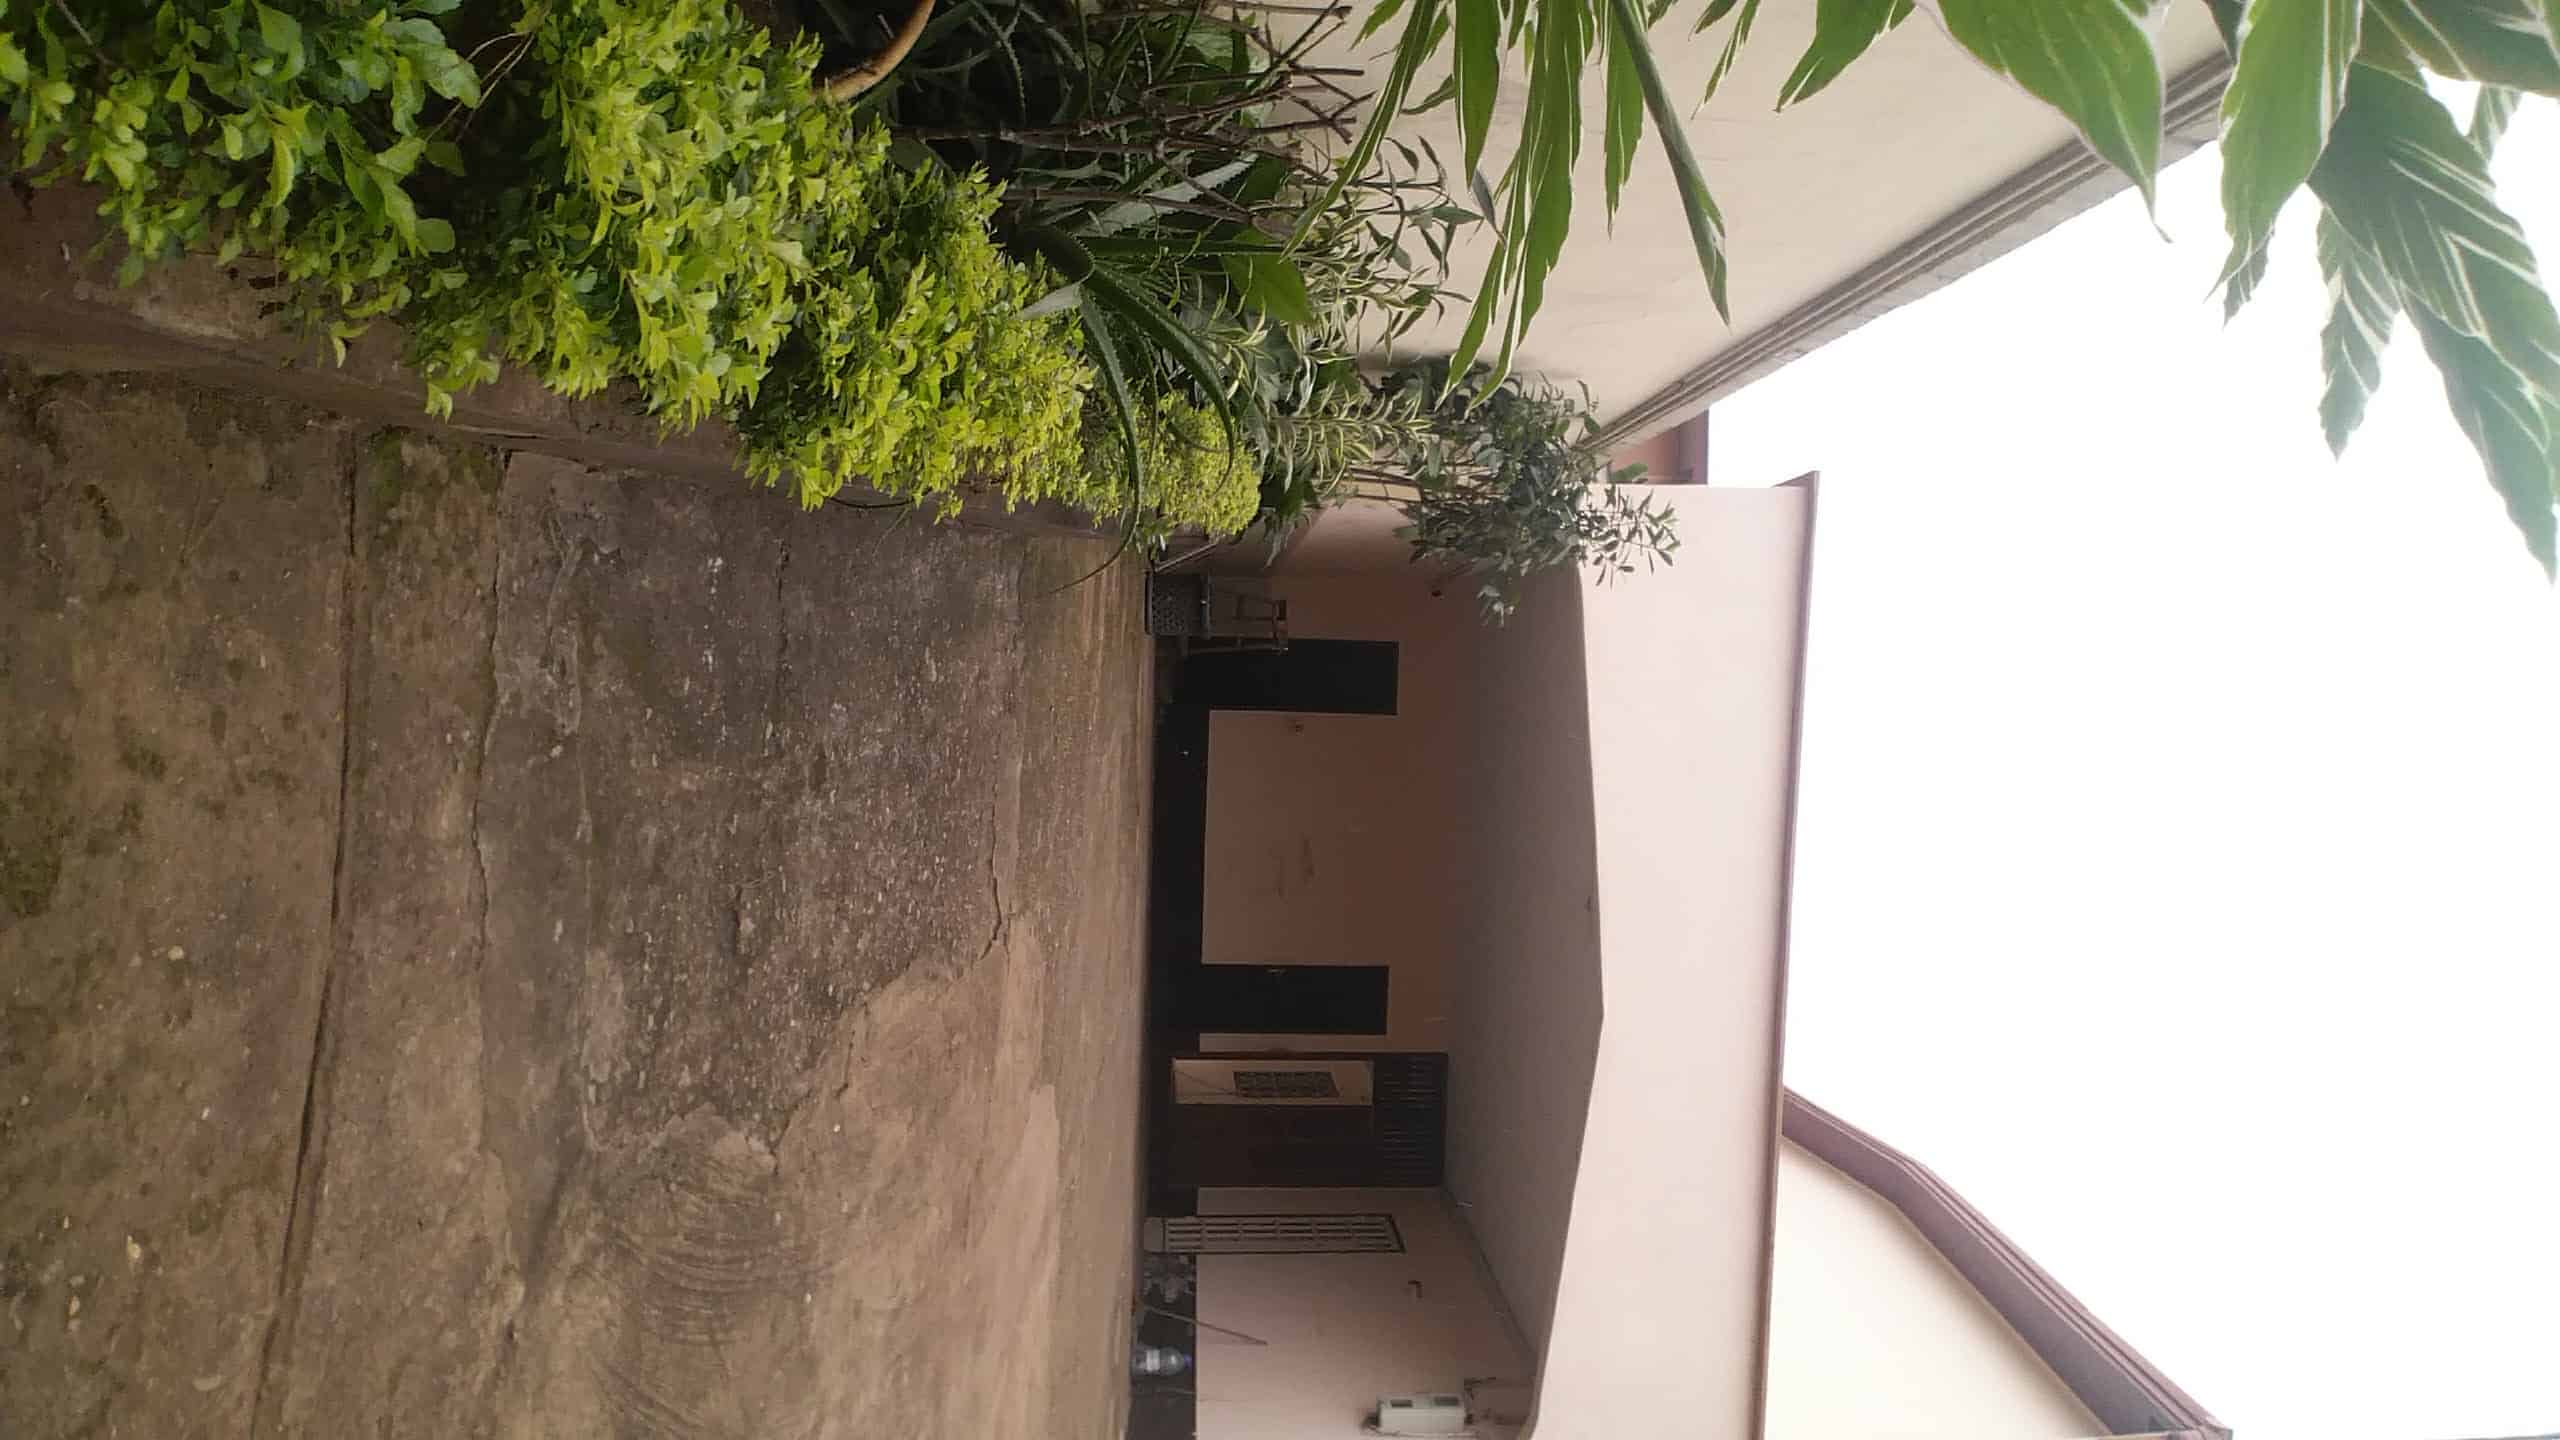 House (Duplex) to rent - Yaoundé, Mfandena, Entré dépôt de gaz - 4 living room(s), 6 bedroom(s), 4 bathroom(s) - 750 000 FCFA / month